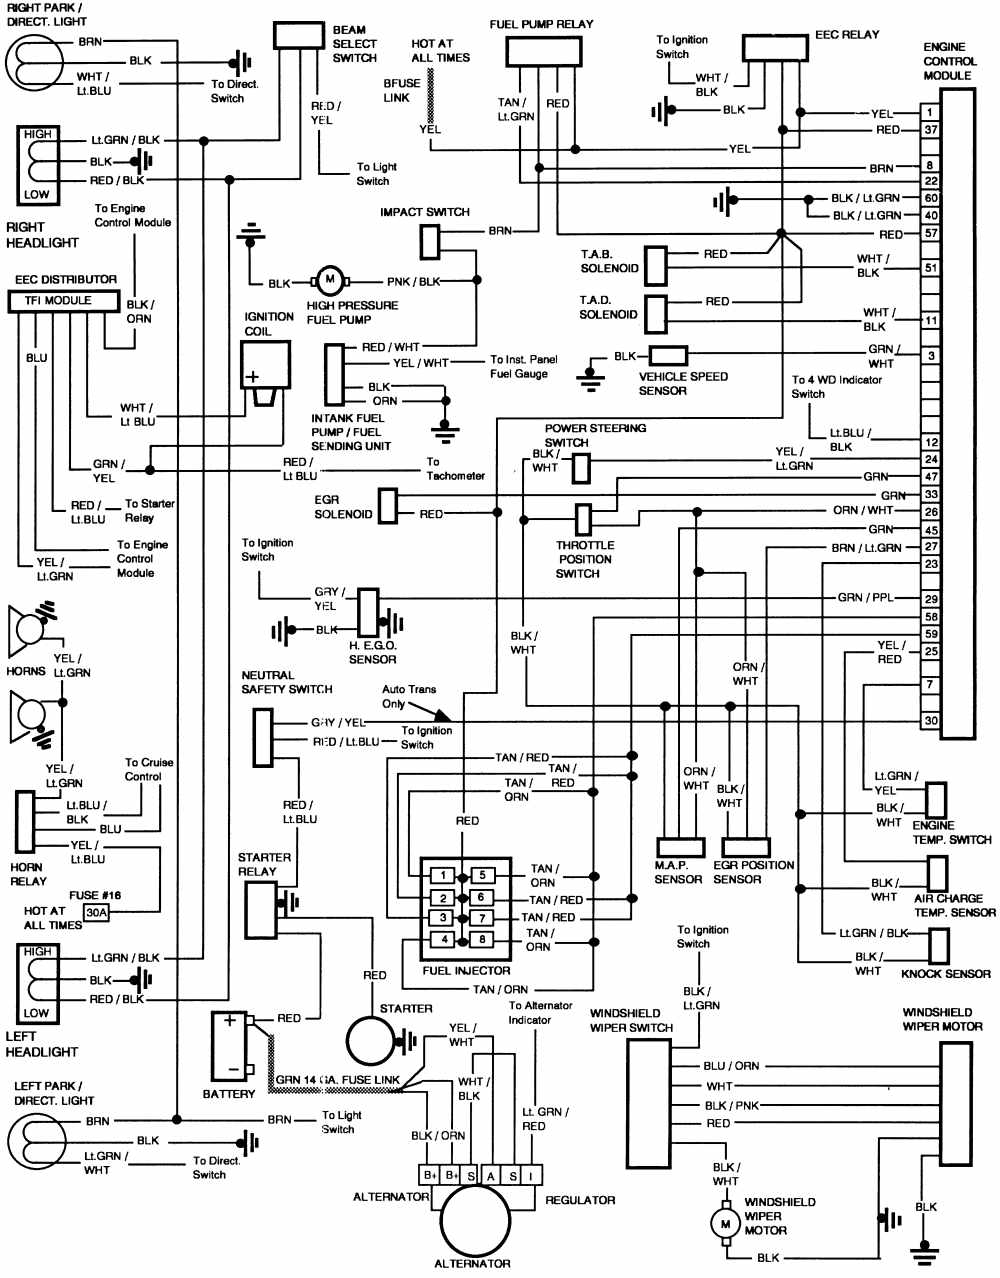 Ford E 150 Engine Diagram on wiring diagram for 1980 honda express